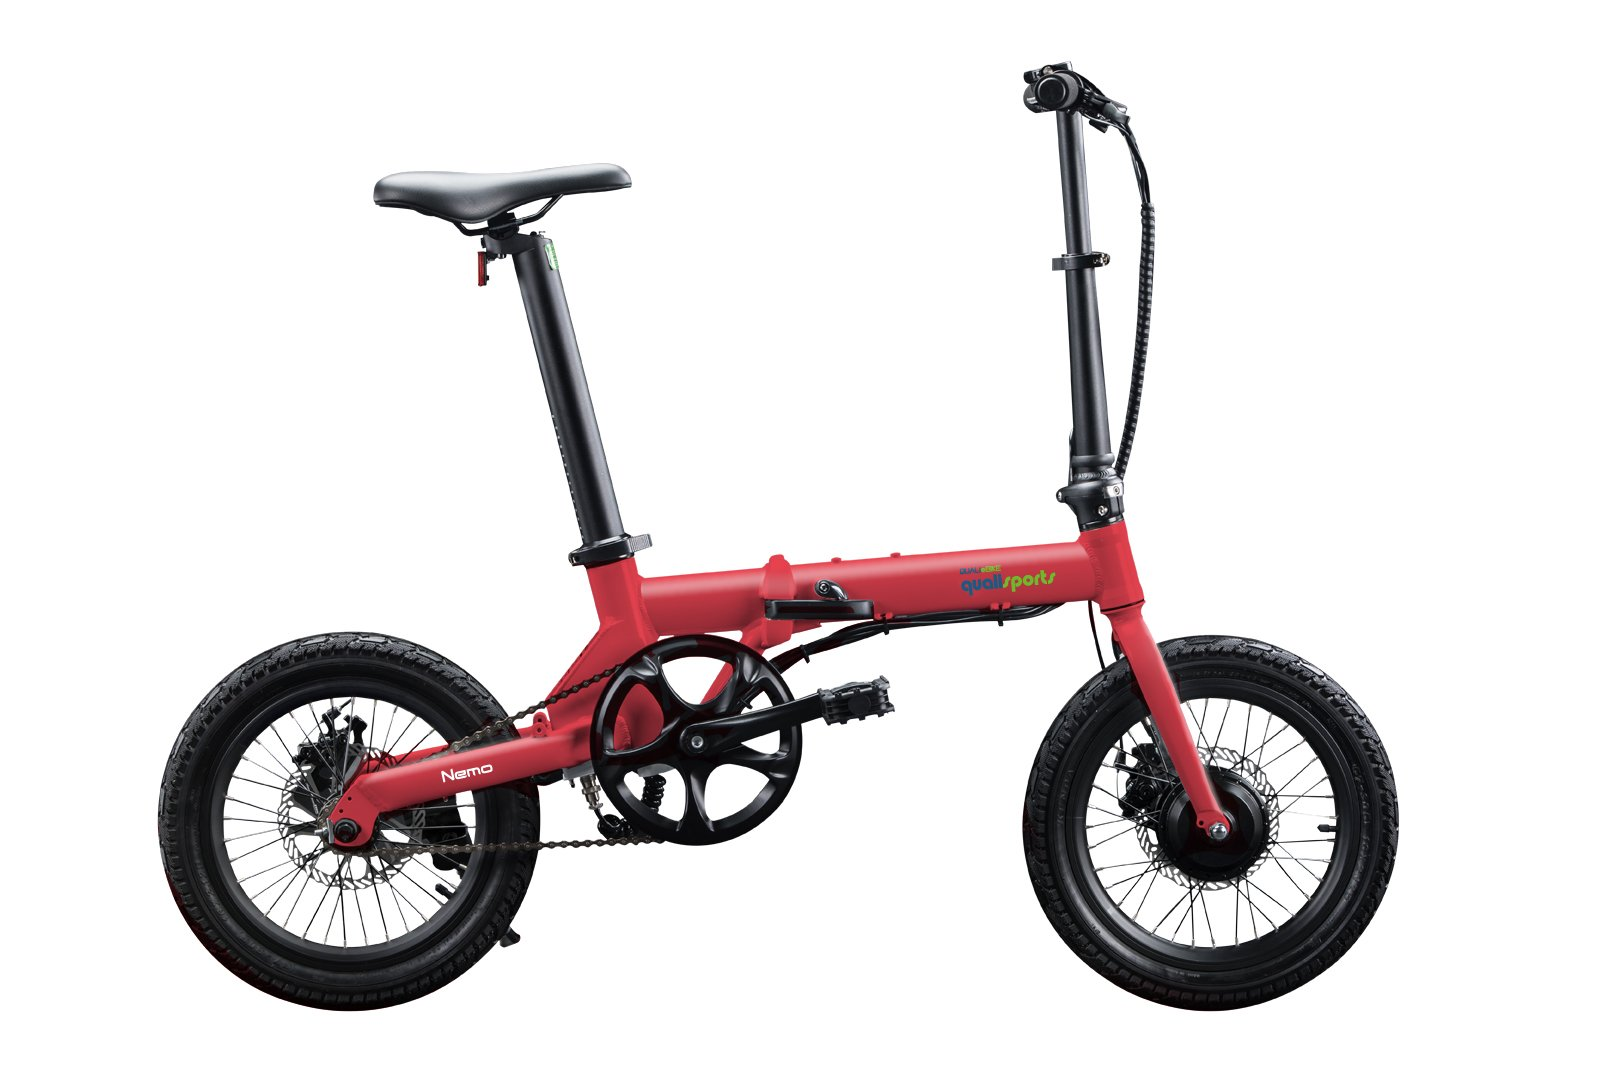 "Qualisports Nemo - 16"" Folding Electric Bike Red/Black $899   ""NEMO"" is a super light 16 inch folding Electric Bike, which only weighs 30lbs.  It conveniently folds down to 30.7"" x 12.2"" x 22.8"" for easy storage.  Quali-bikers can easily store them in tight out of the way places in apartments, closets, under your work desk, in an RV, a boat or even on your own plane. The NEMO features an easy to read on-board multifunctional LCD display.  You can ride the NEMO in four different modes:  As a normal bike, (PAS) Pedal assist mode, Cruise control mode, or enjoy an effortless riding experience with a simple trigger throttle mode for getting over help over the climb.  The NEMO is powered by a 250W brushless geared motor, a FOC controller interface, which gives our out E-bikes smooth acceleration and less drag making this a perfect bike for smaller commutes.  Our patented seat post battery system (Samsung 252WH) is not only stylish and sleek, it also gives the NEMO a range of 30 miles on a single charge."